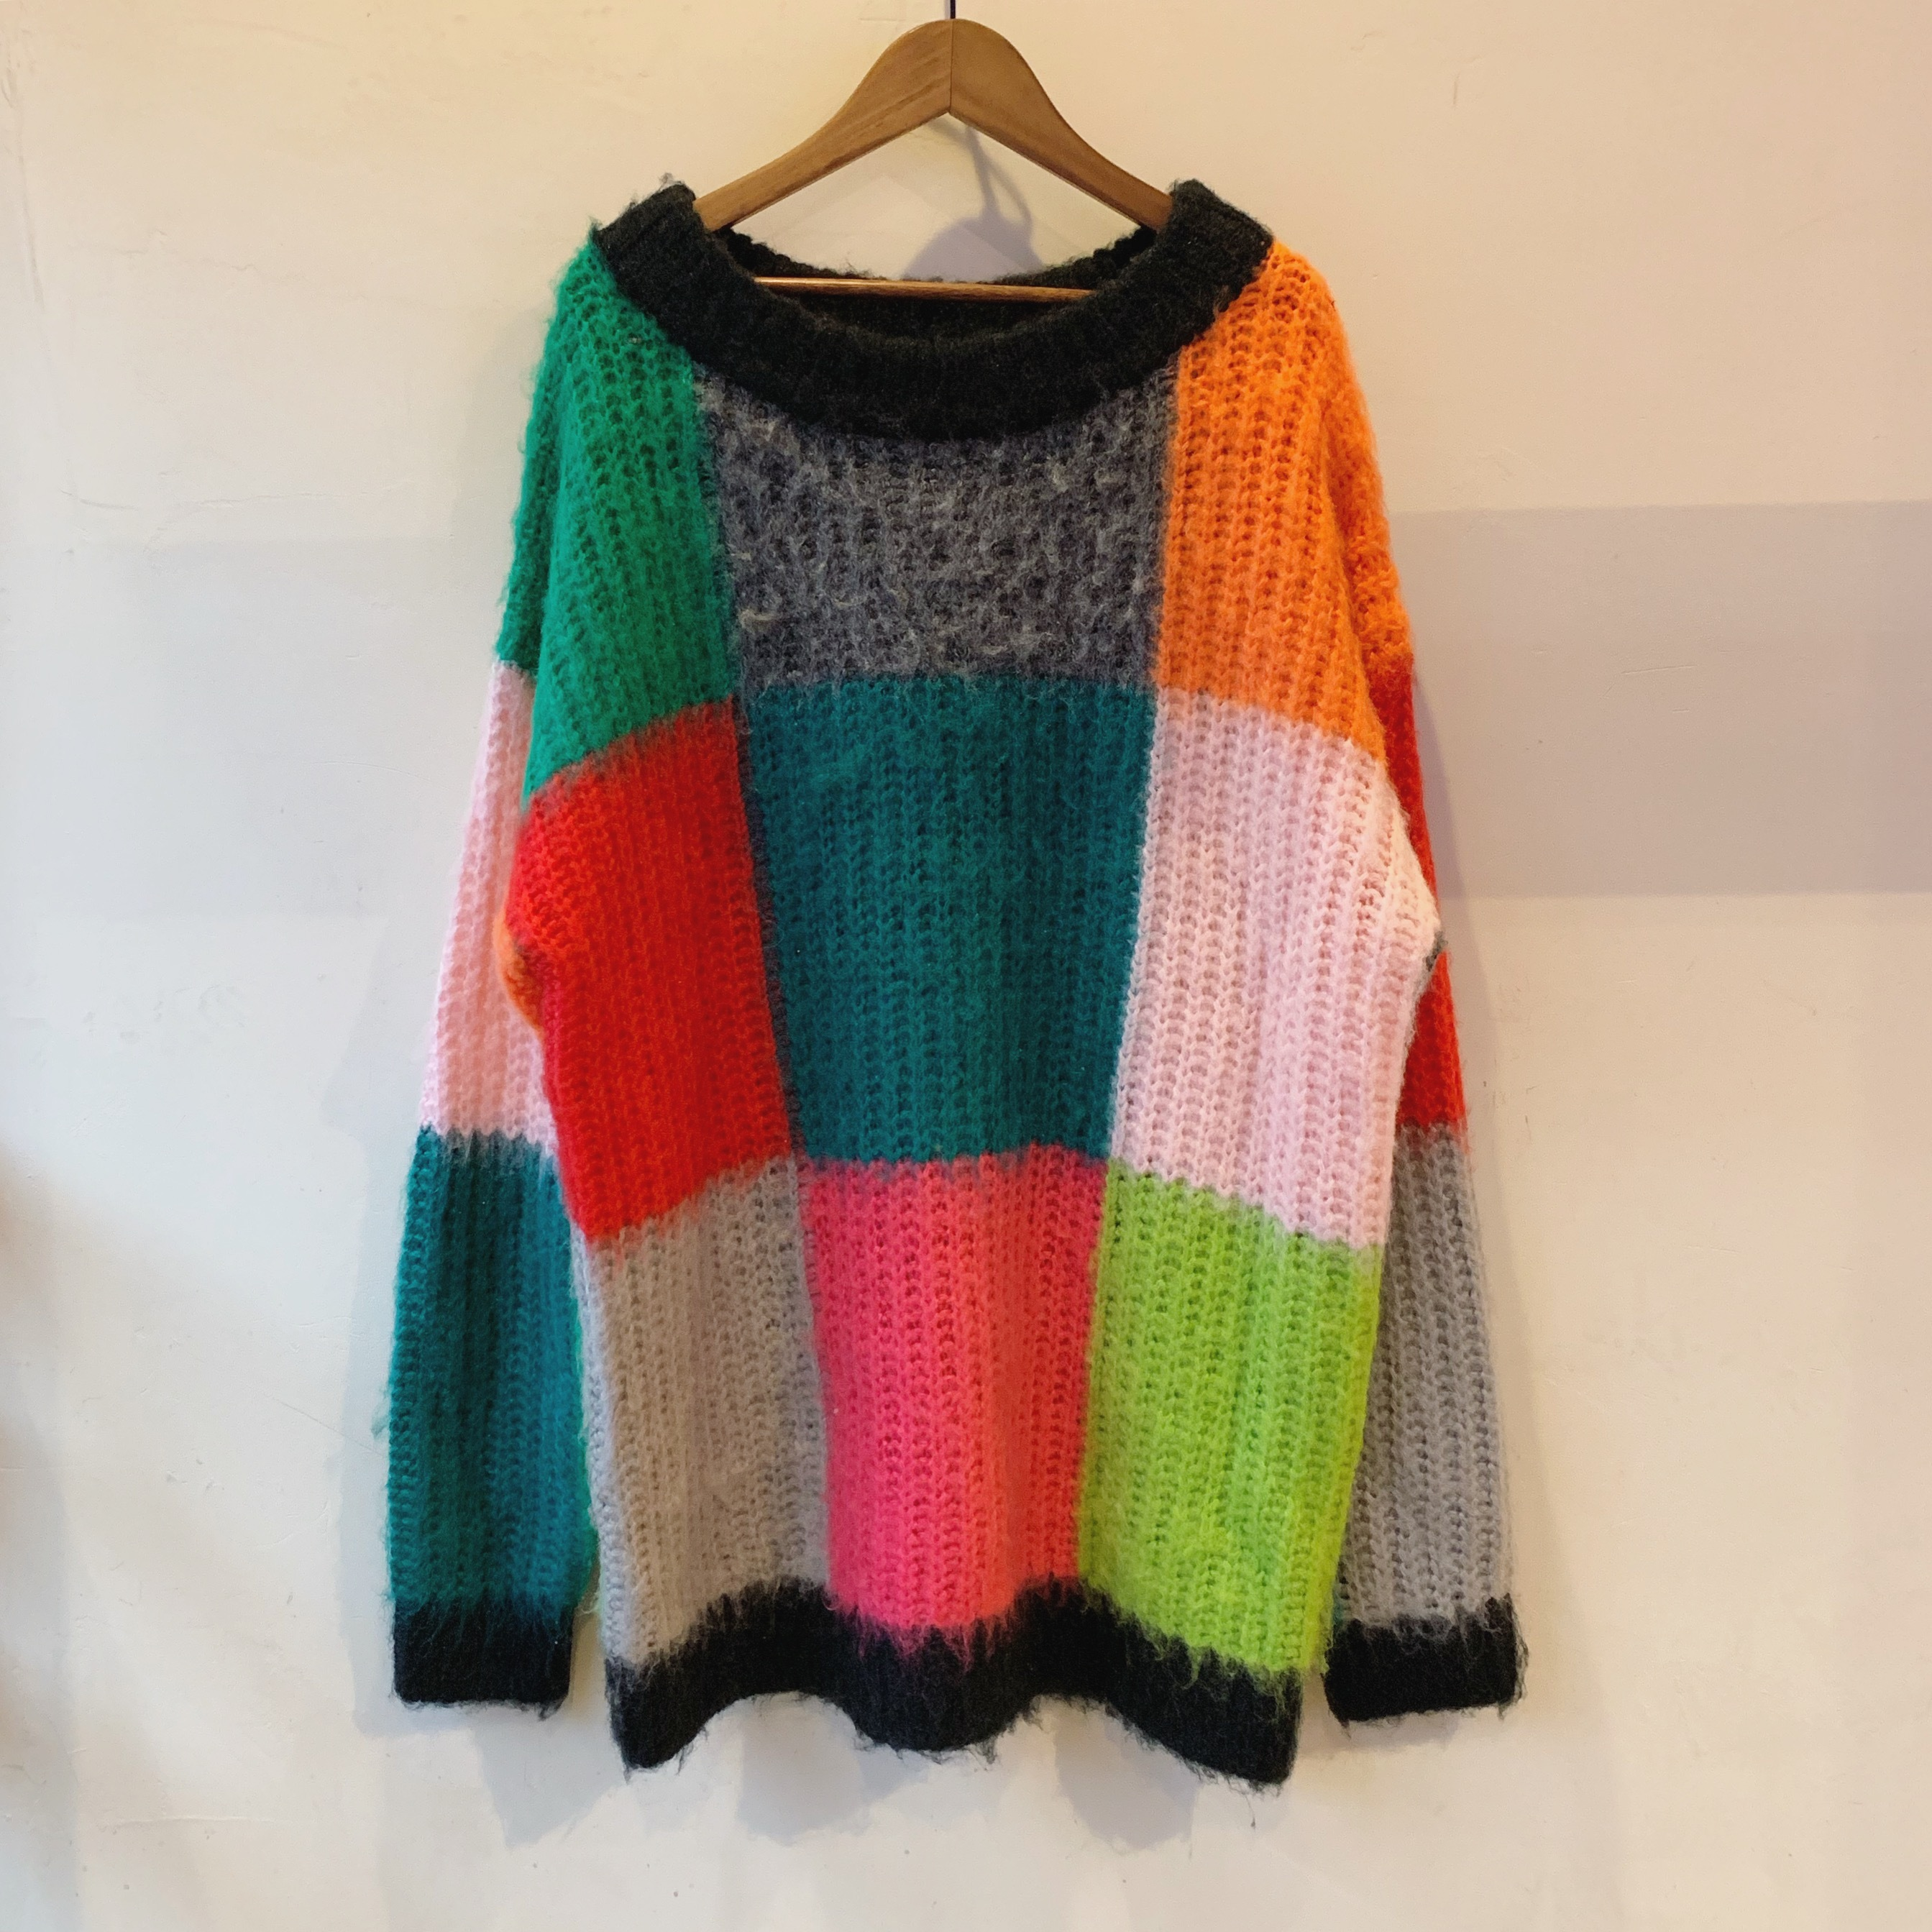 vintage colorful knit sweater